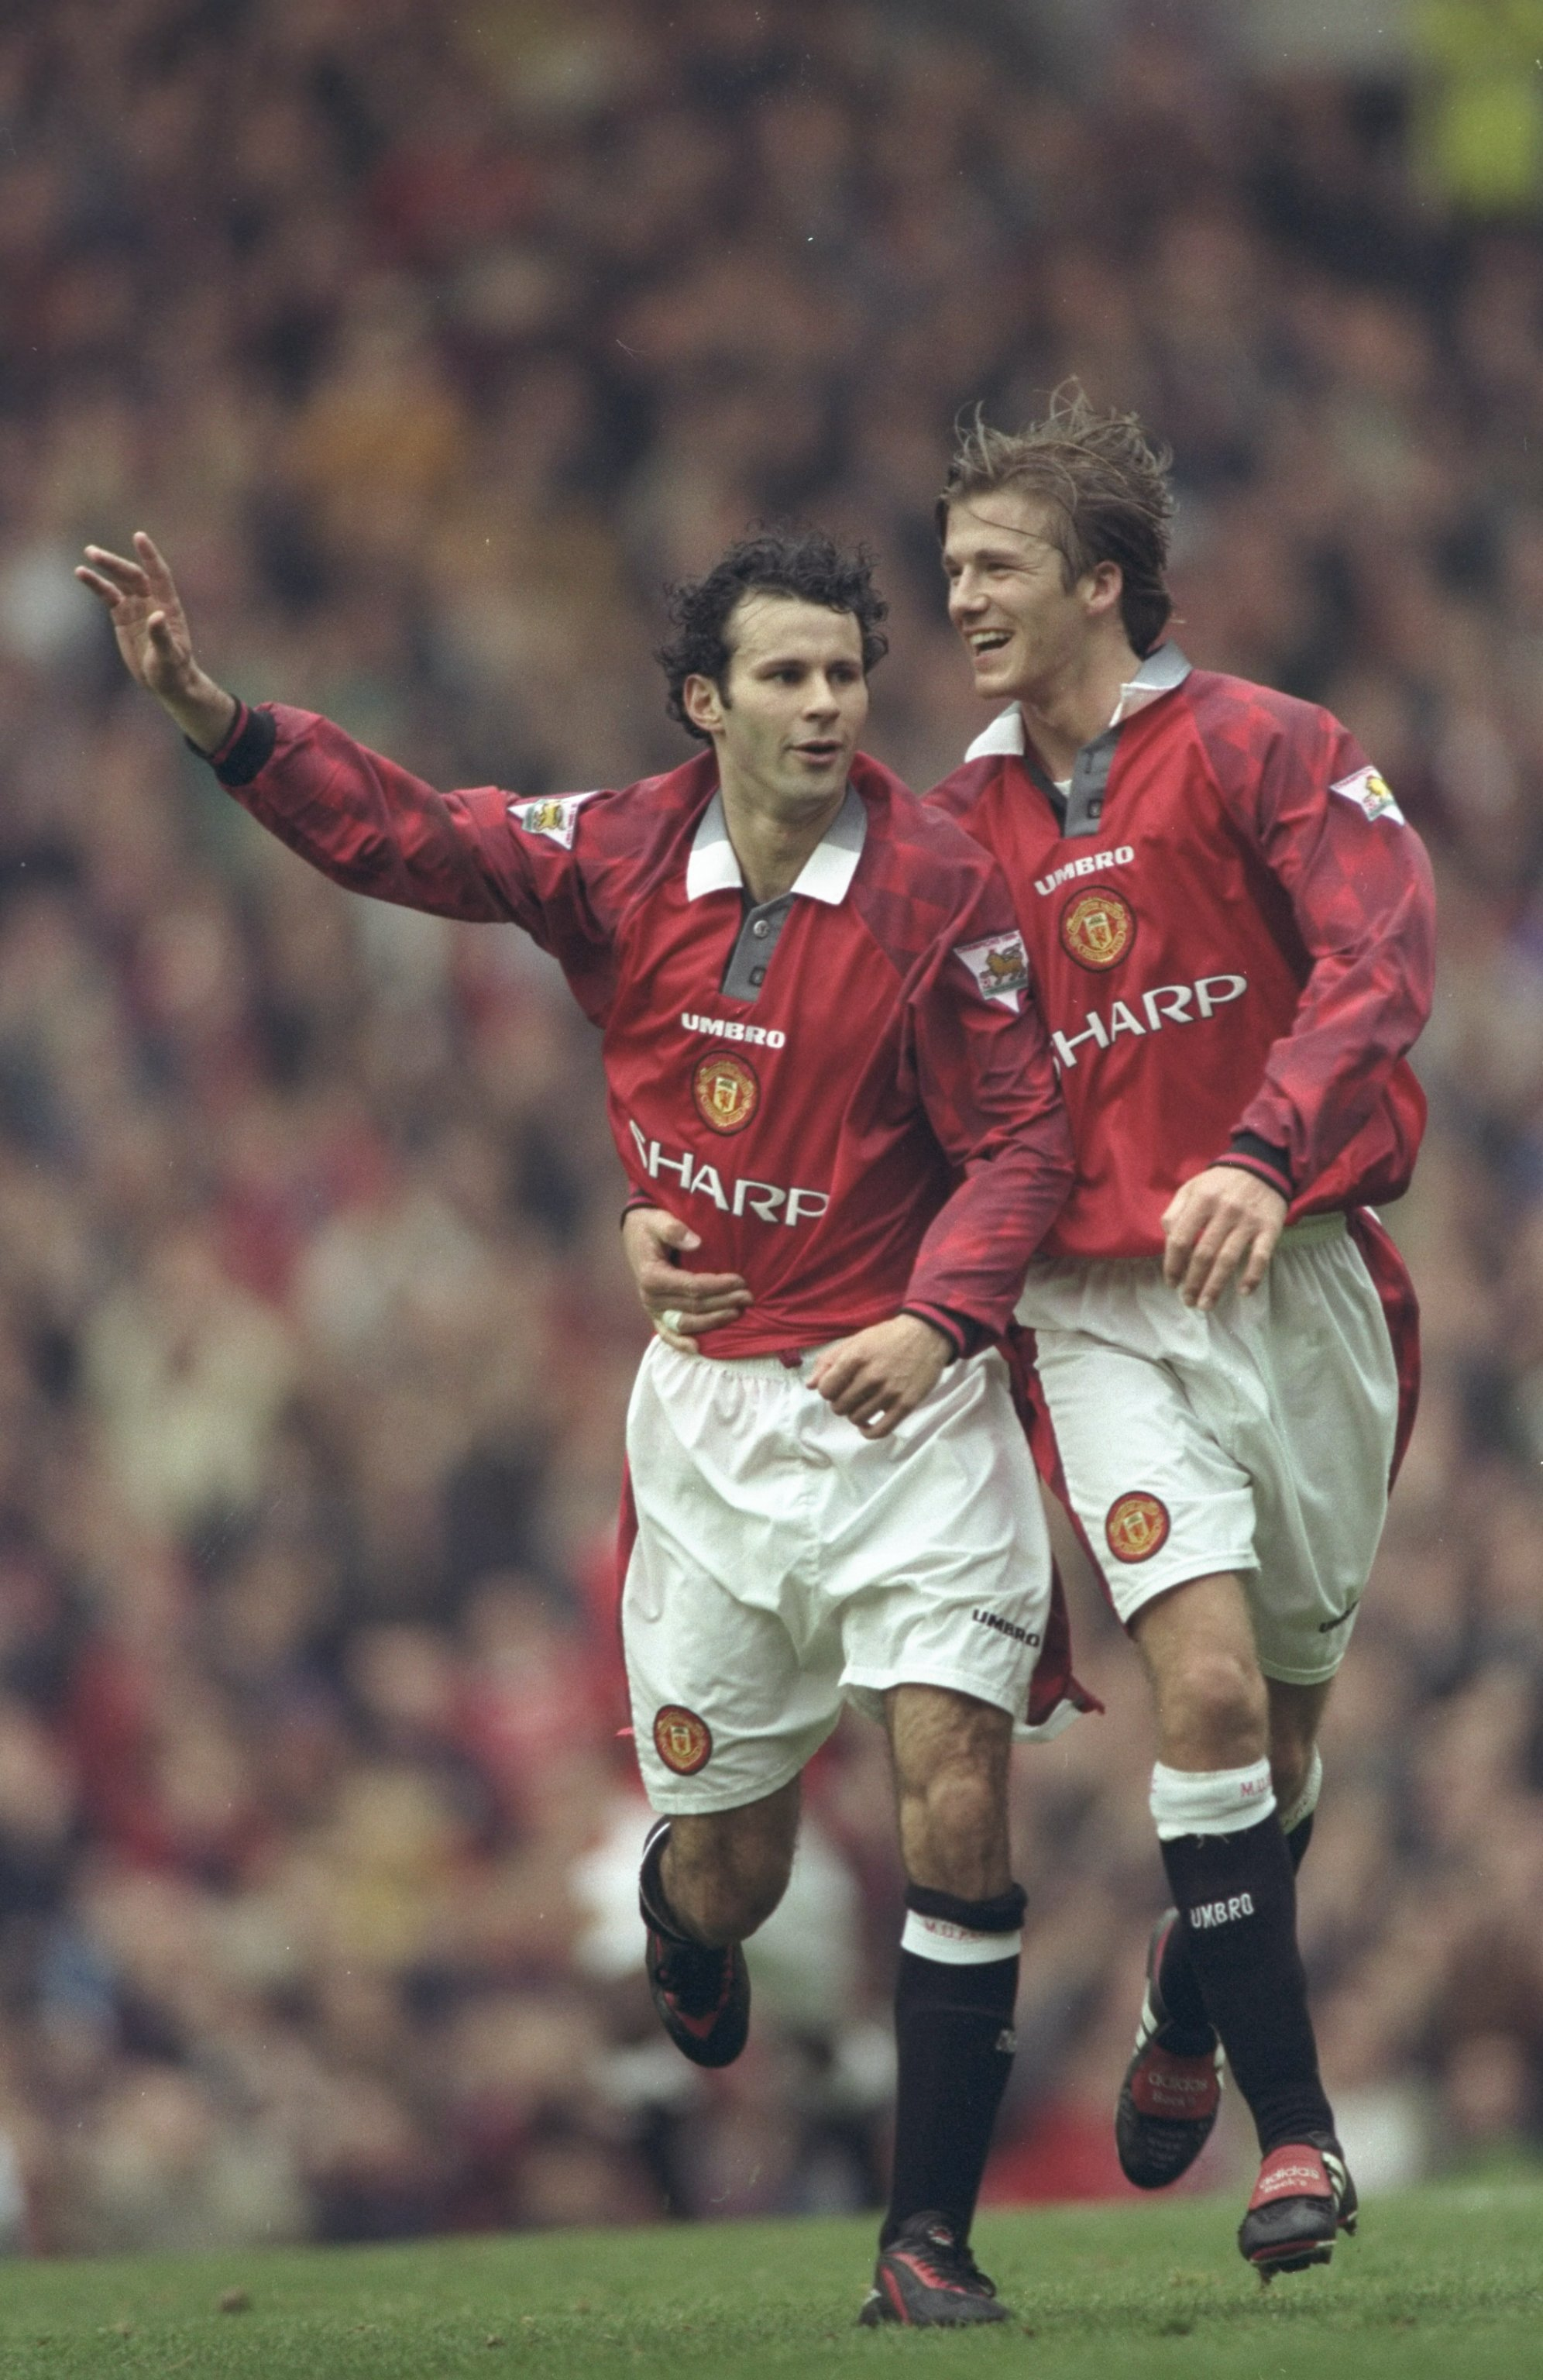 Manchester United's Ryan Giggs (left) and David Beckham (right), 1997-98. (Allsport UK /Allsport)